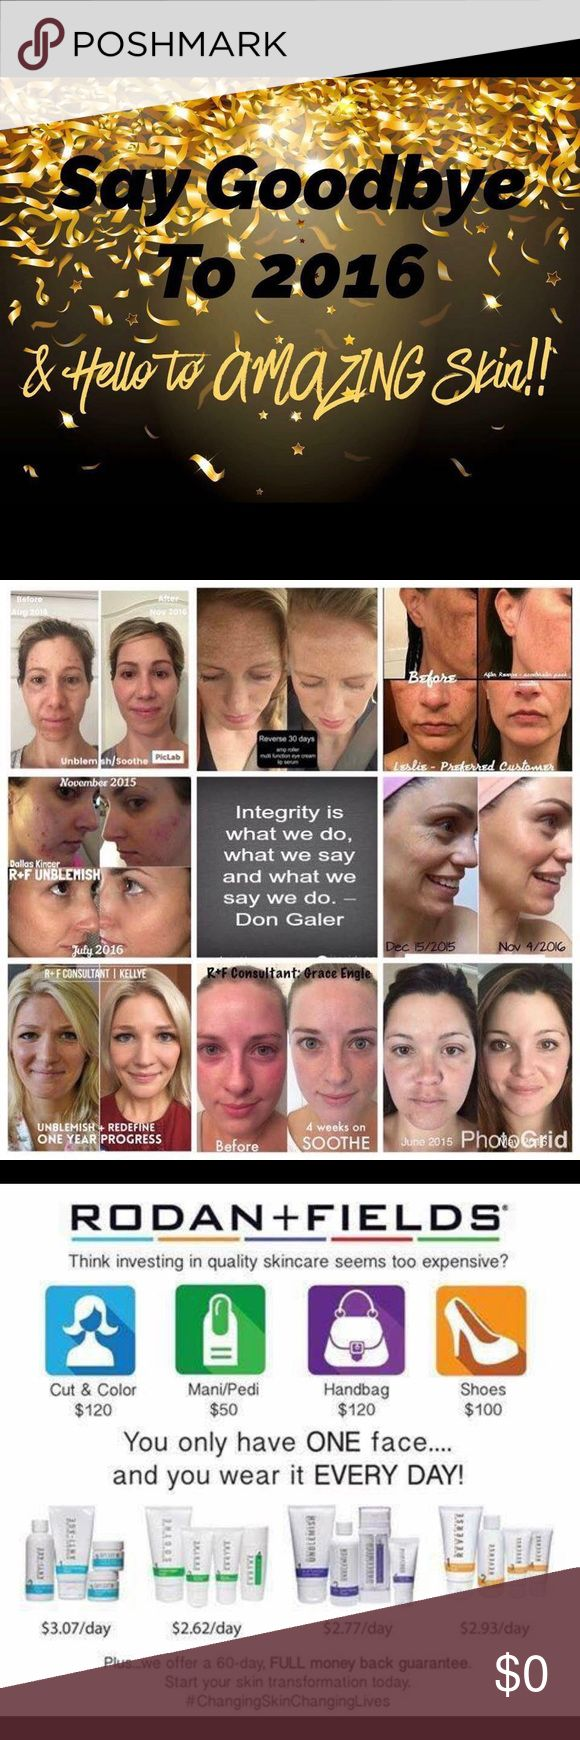 Rodan an Fields Looking to get the best skin you can have? Contact me to get you start with Rodan and Fields. Ask how you can save 10% on all products and get free shipping. Memrick.myrandf.com Makeup